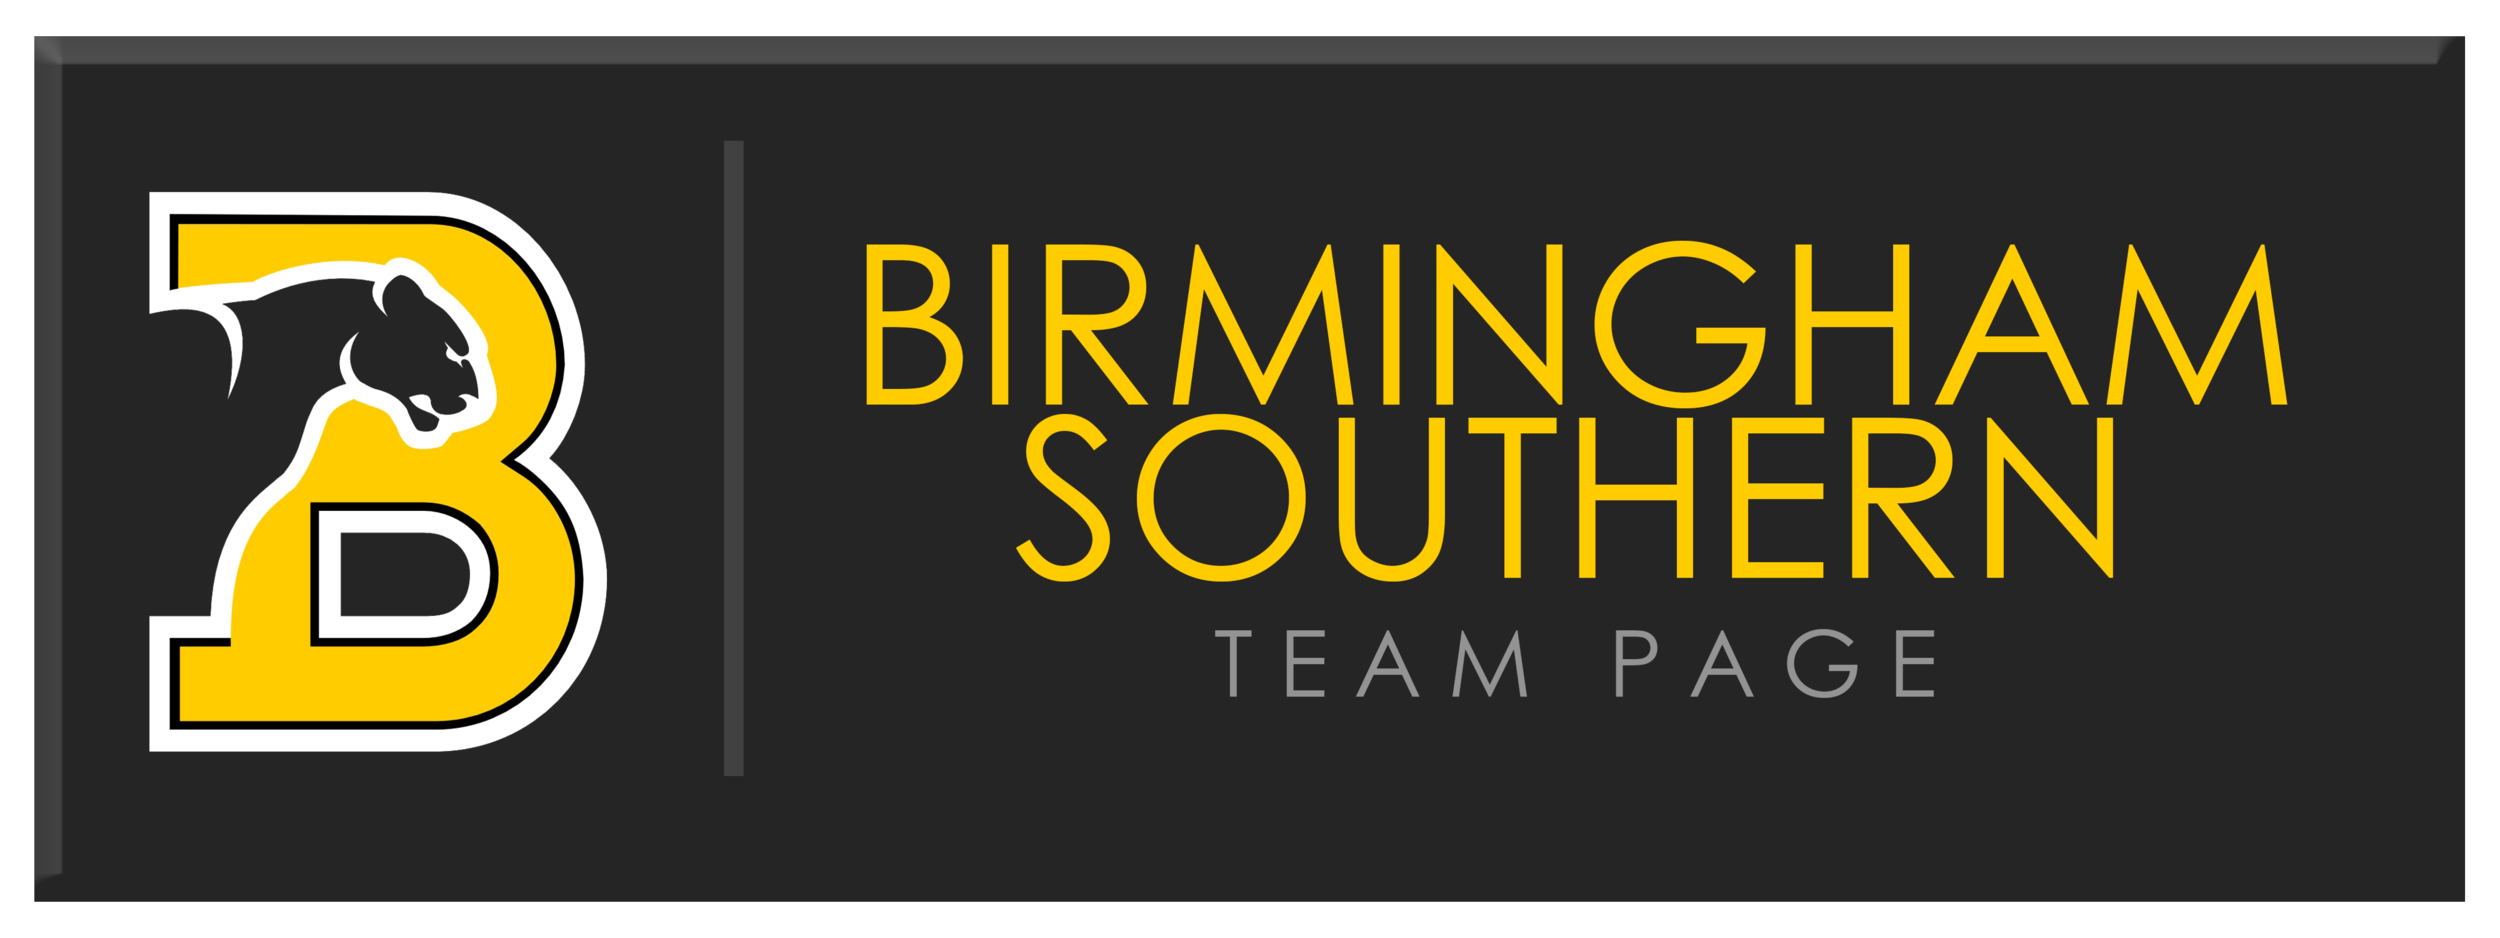 BSC TEAM PAGE.png